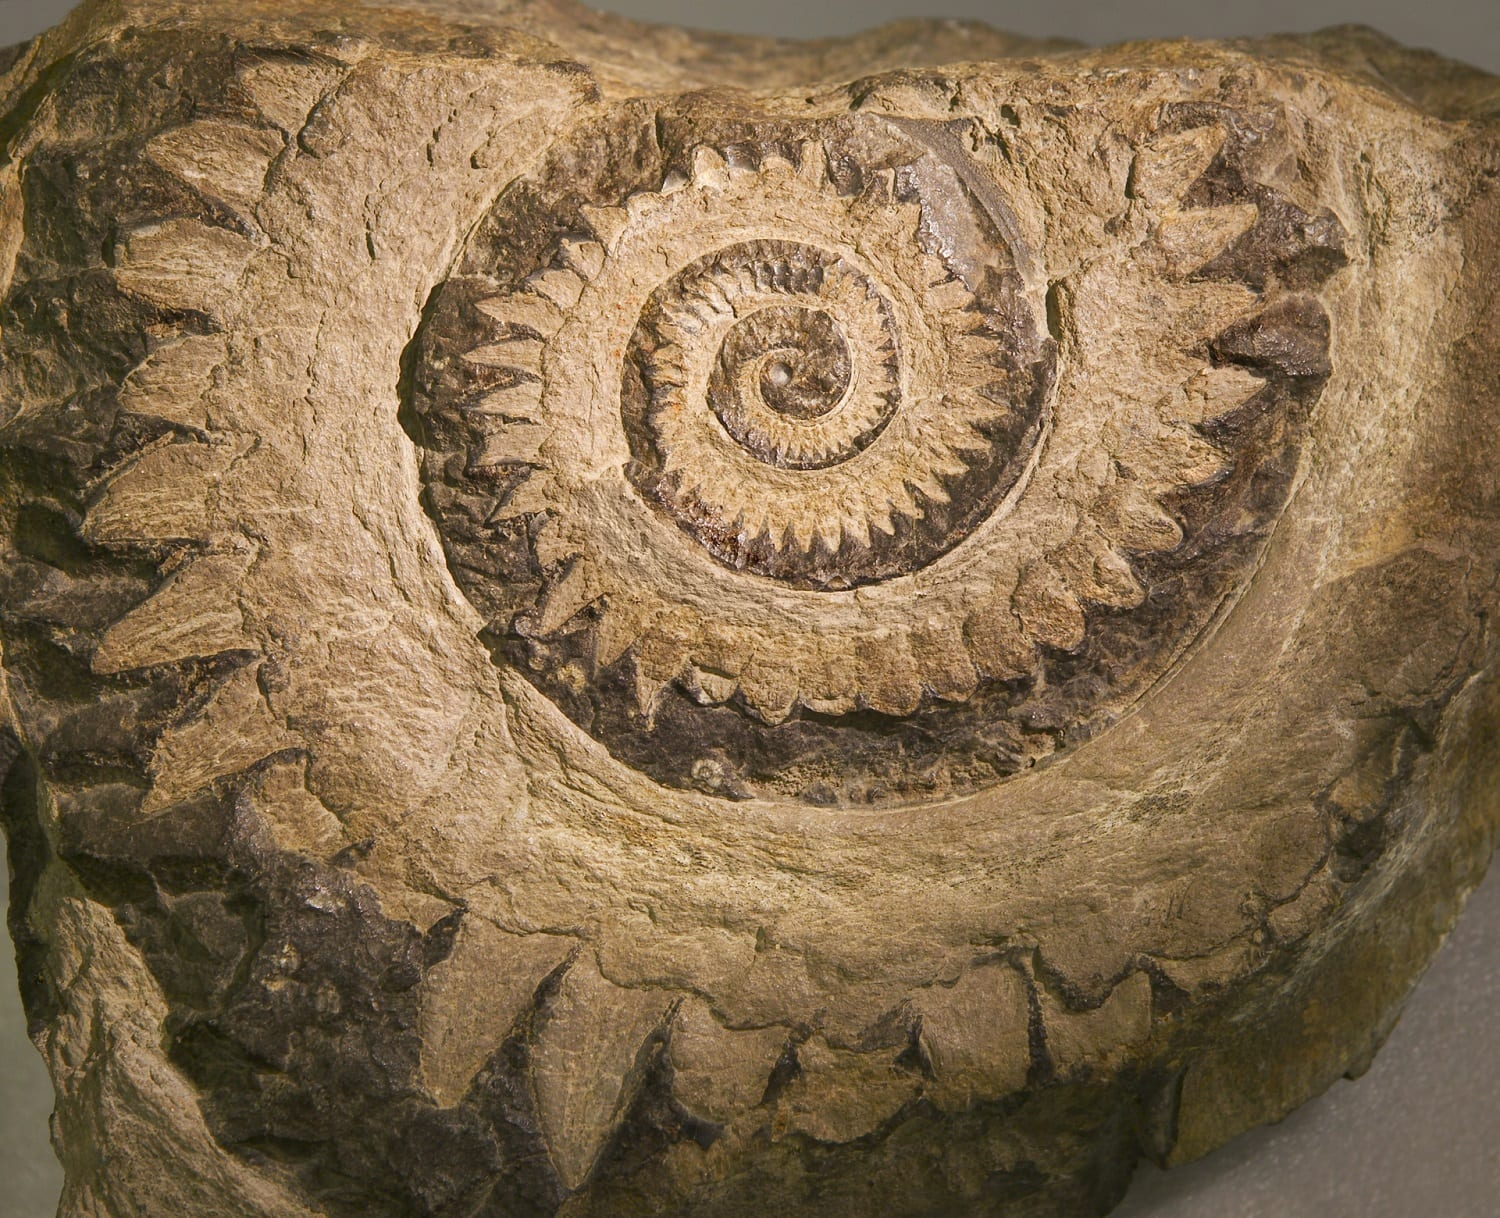 Helicoprion fossil showing coiled 'tooth': ID 30690 © Linda Bair | Dreamstime.com